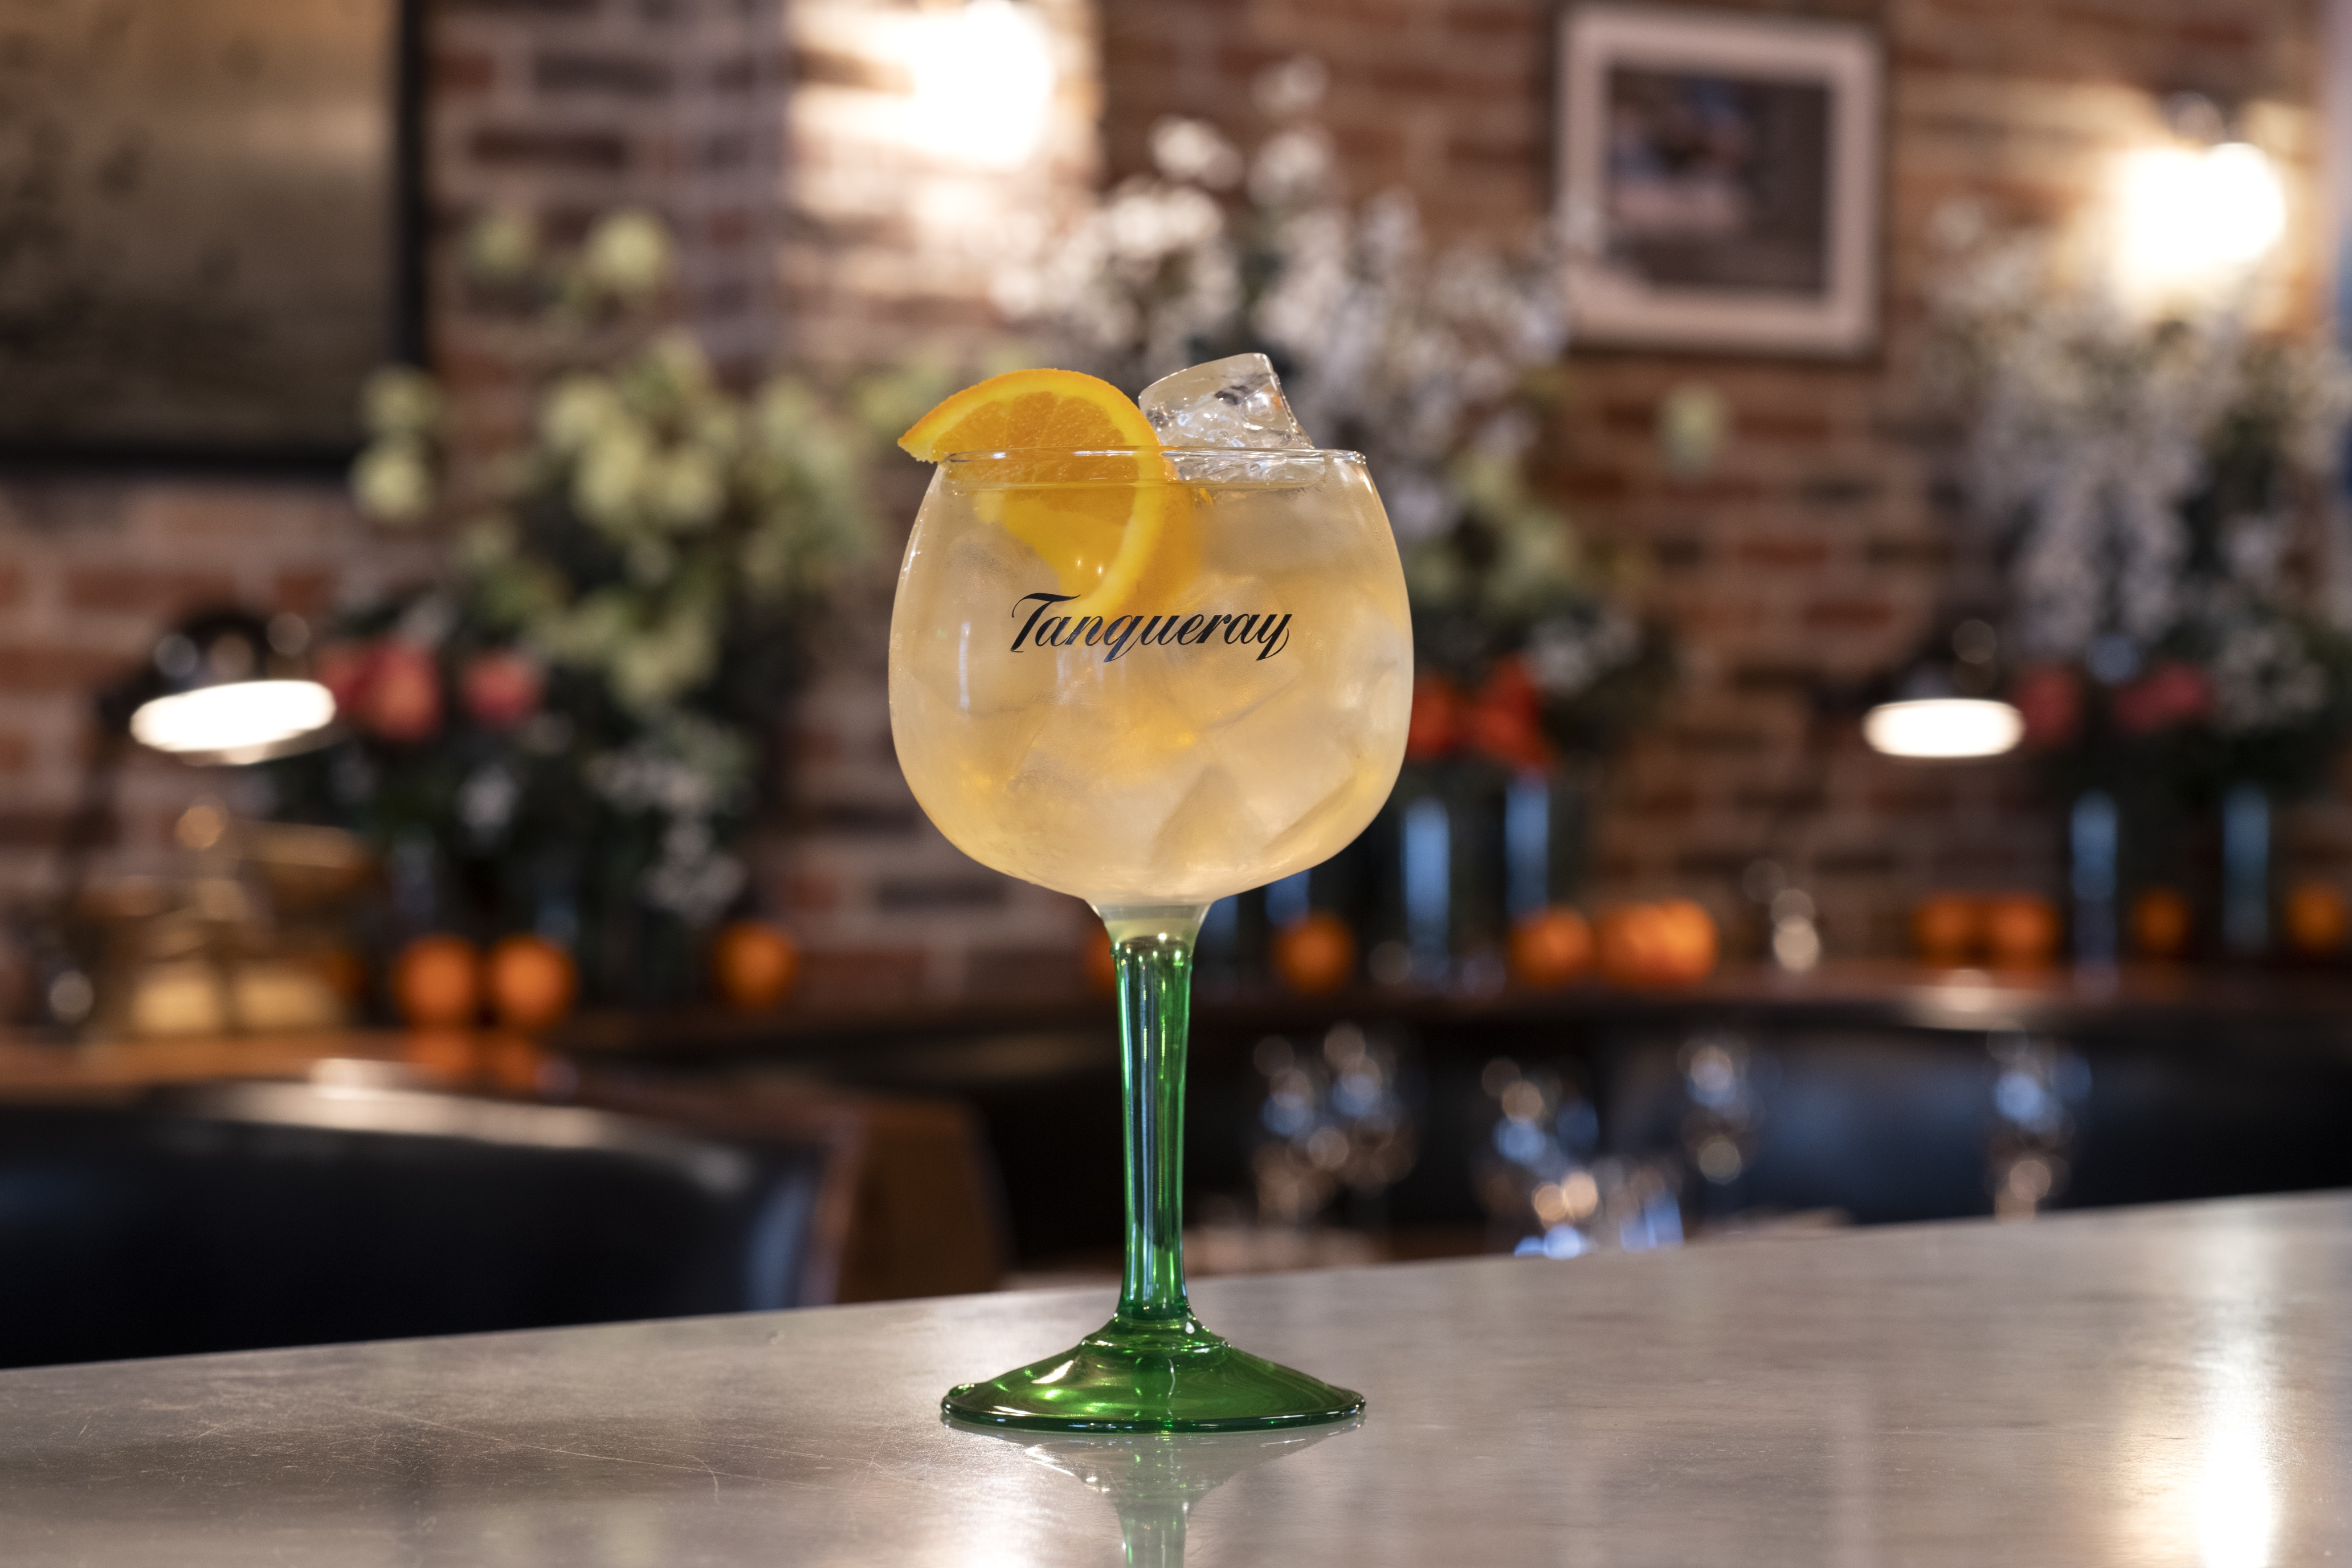 Tanqueray G & T